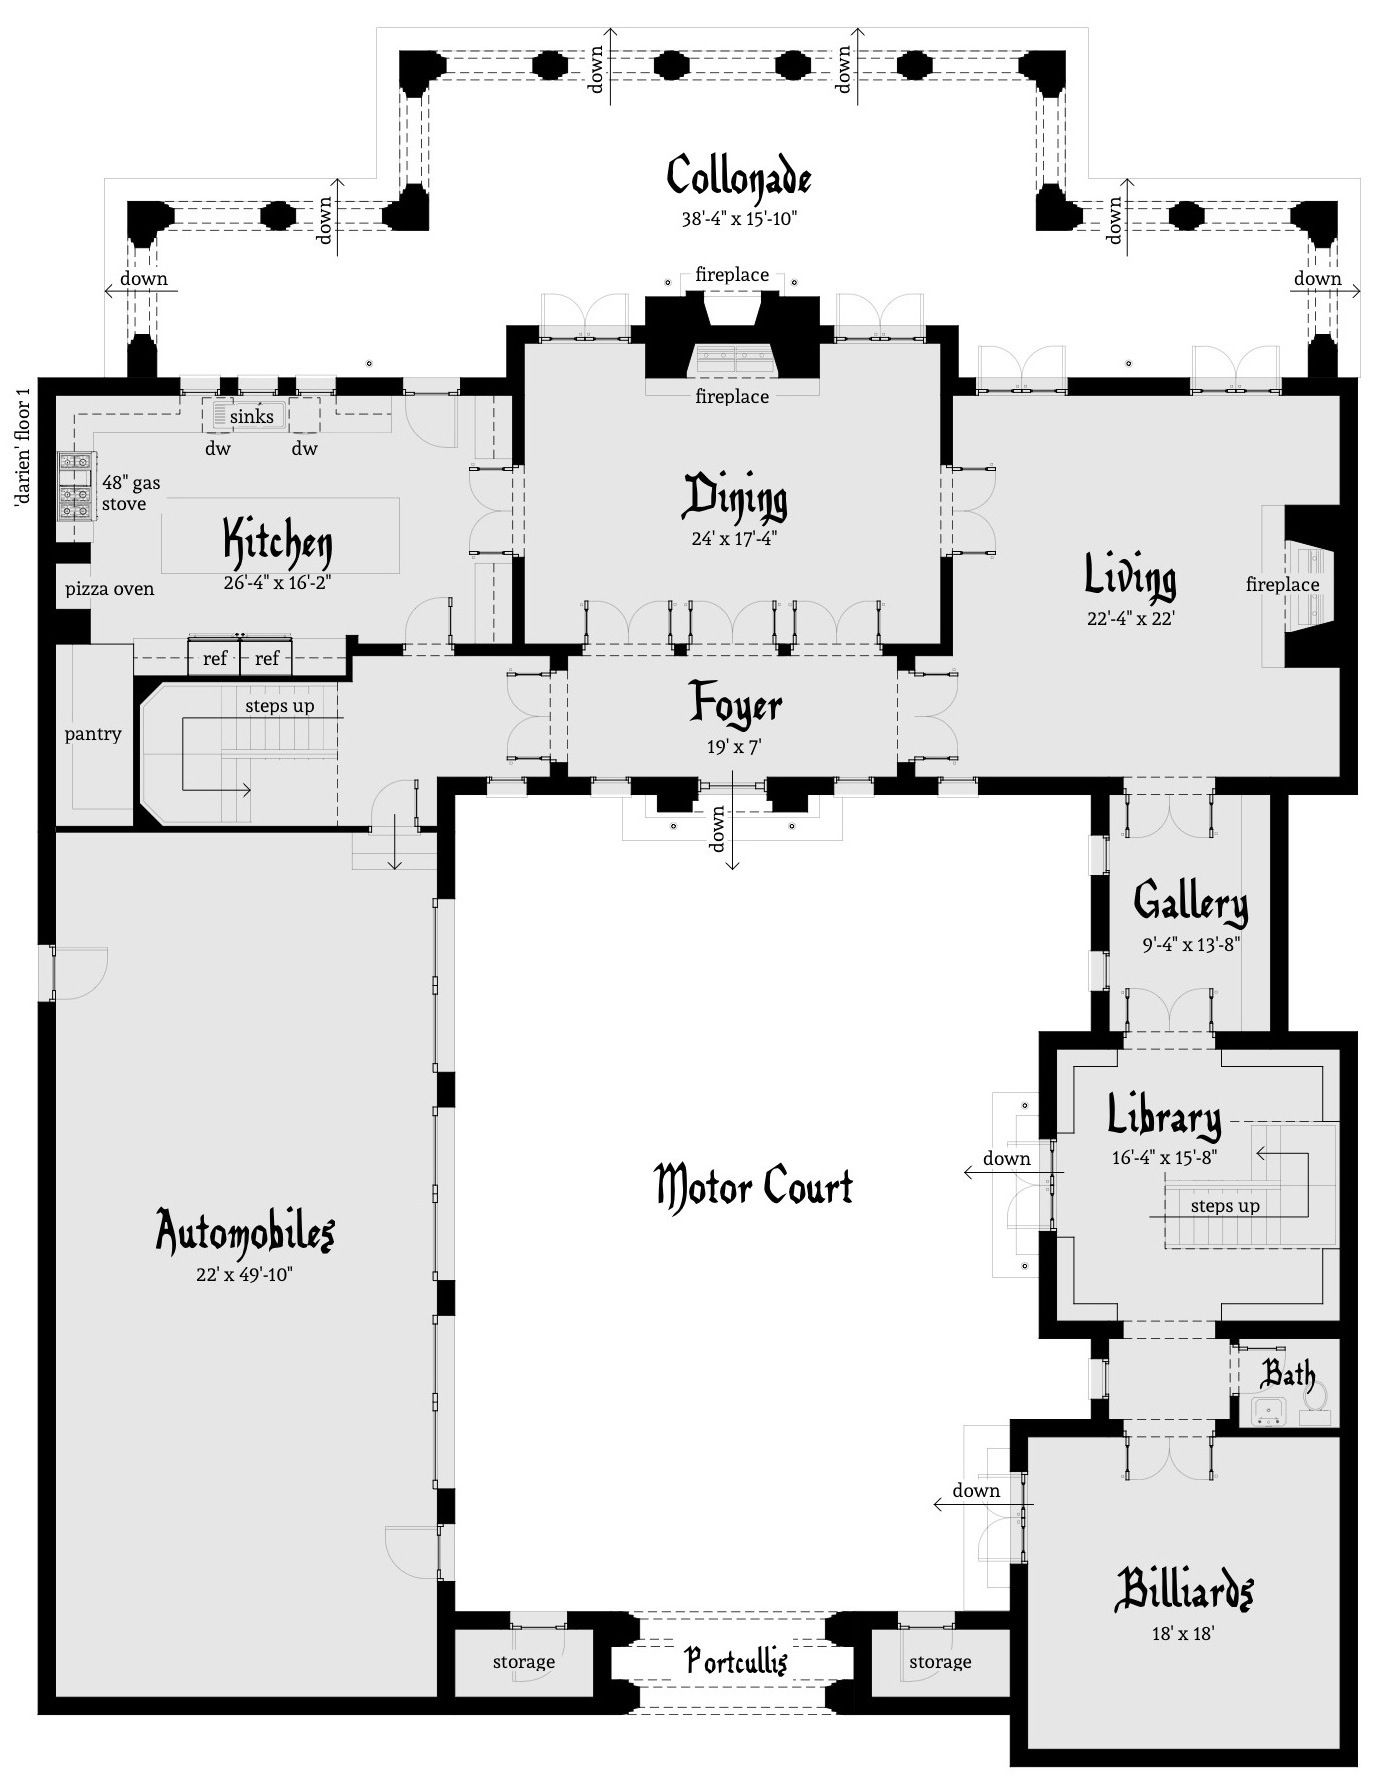 L Shaped Open Concept House Plans Html on modern open concept, wood floors open concept, bathroom open concept, small open concept, living room open concept, kitchen open concept,